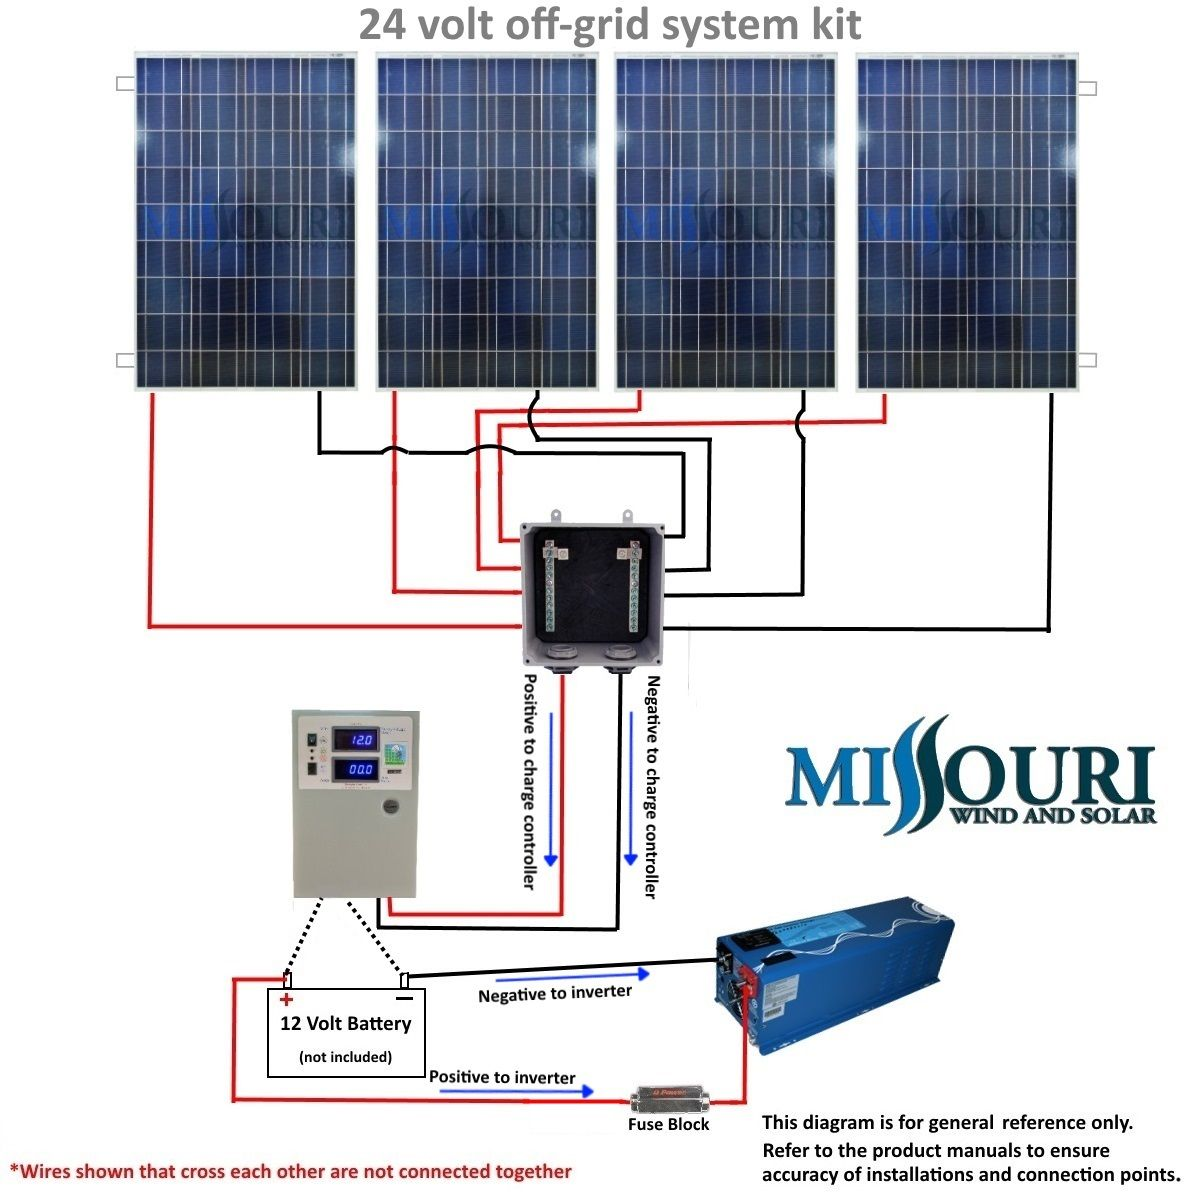 How To Connect Solar Panel Inverter Diagram Kia Rio 2004 Stereo Wiring 1000 Watt 24 Volt Off Grid Kit Techno